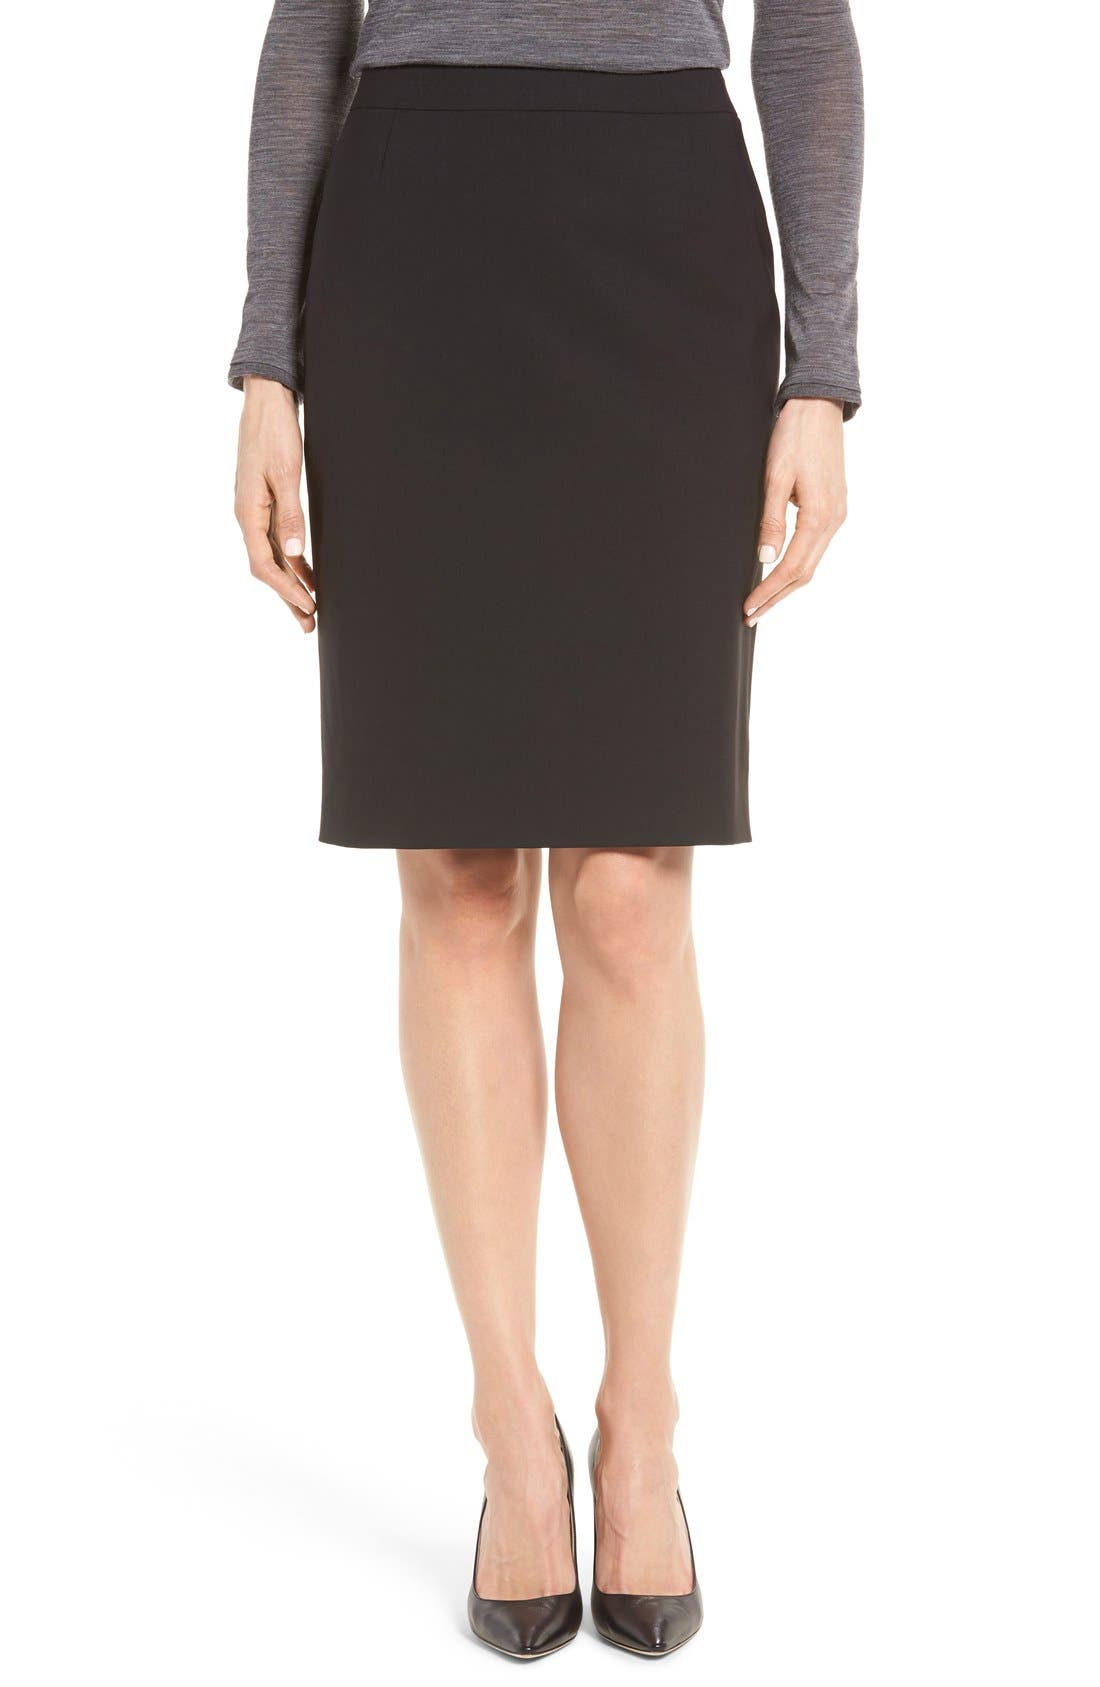 Alternate Image 1 Selected - BOSS Vilea Stretch Wool Pencil Skirt (Regular & Petite)